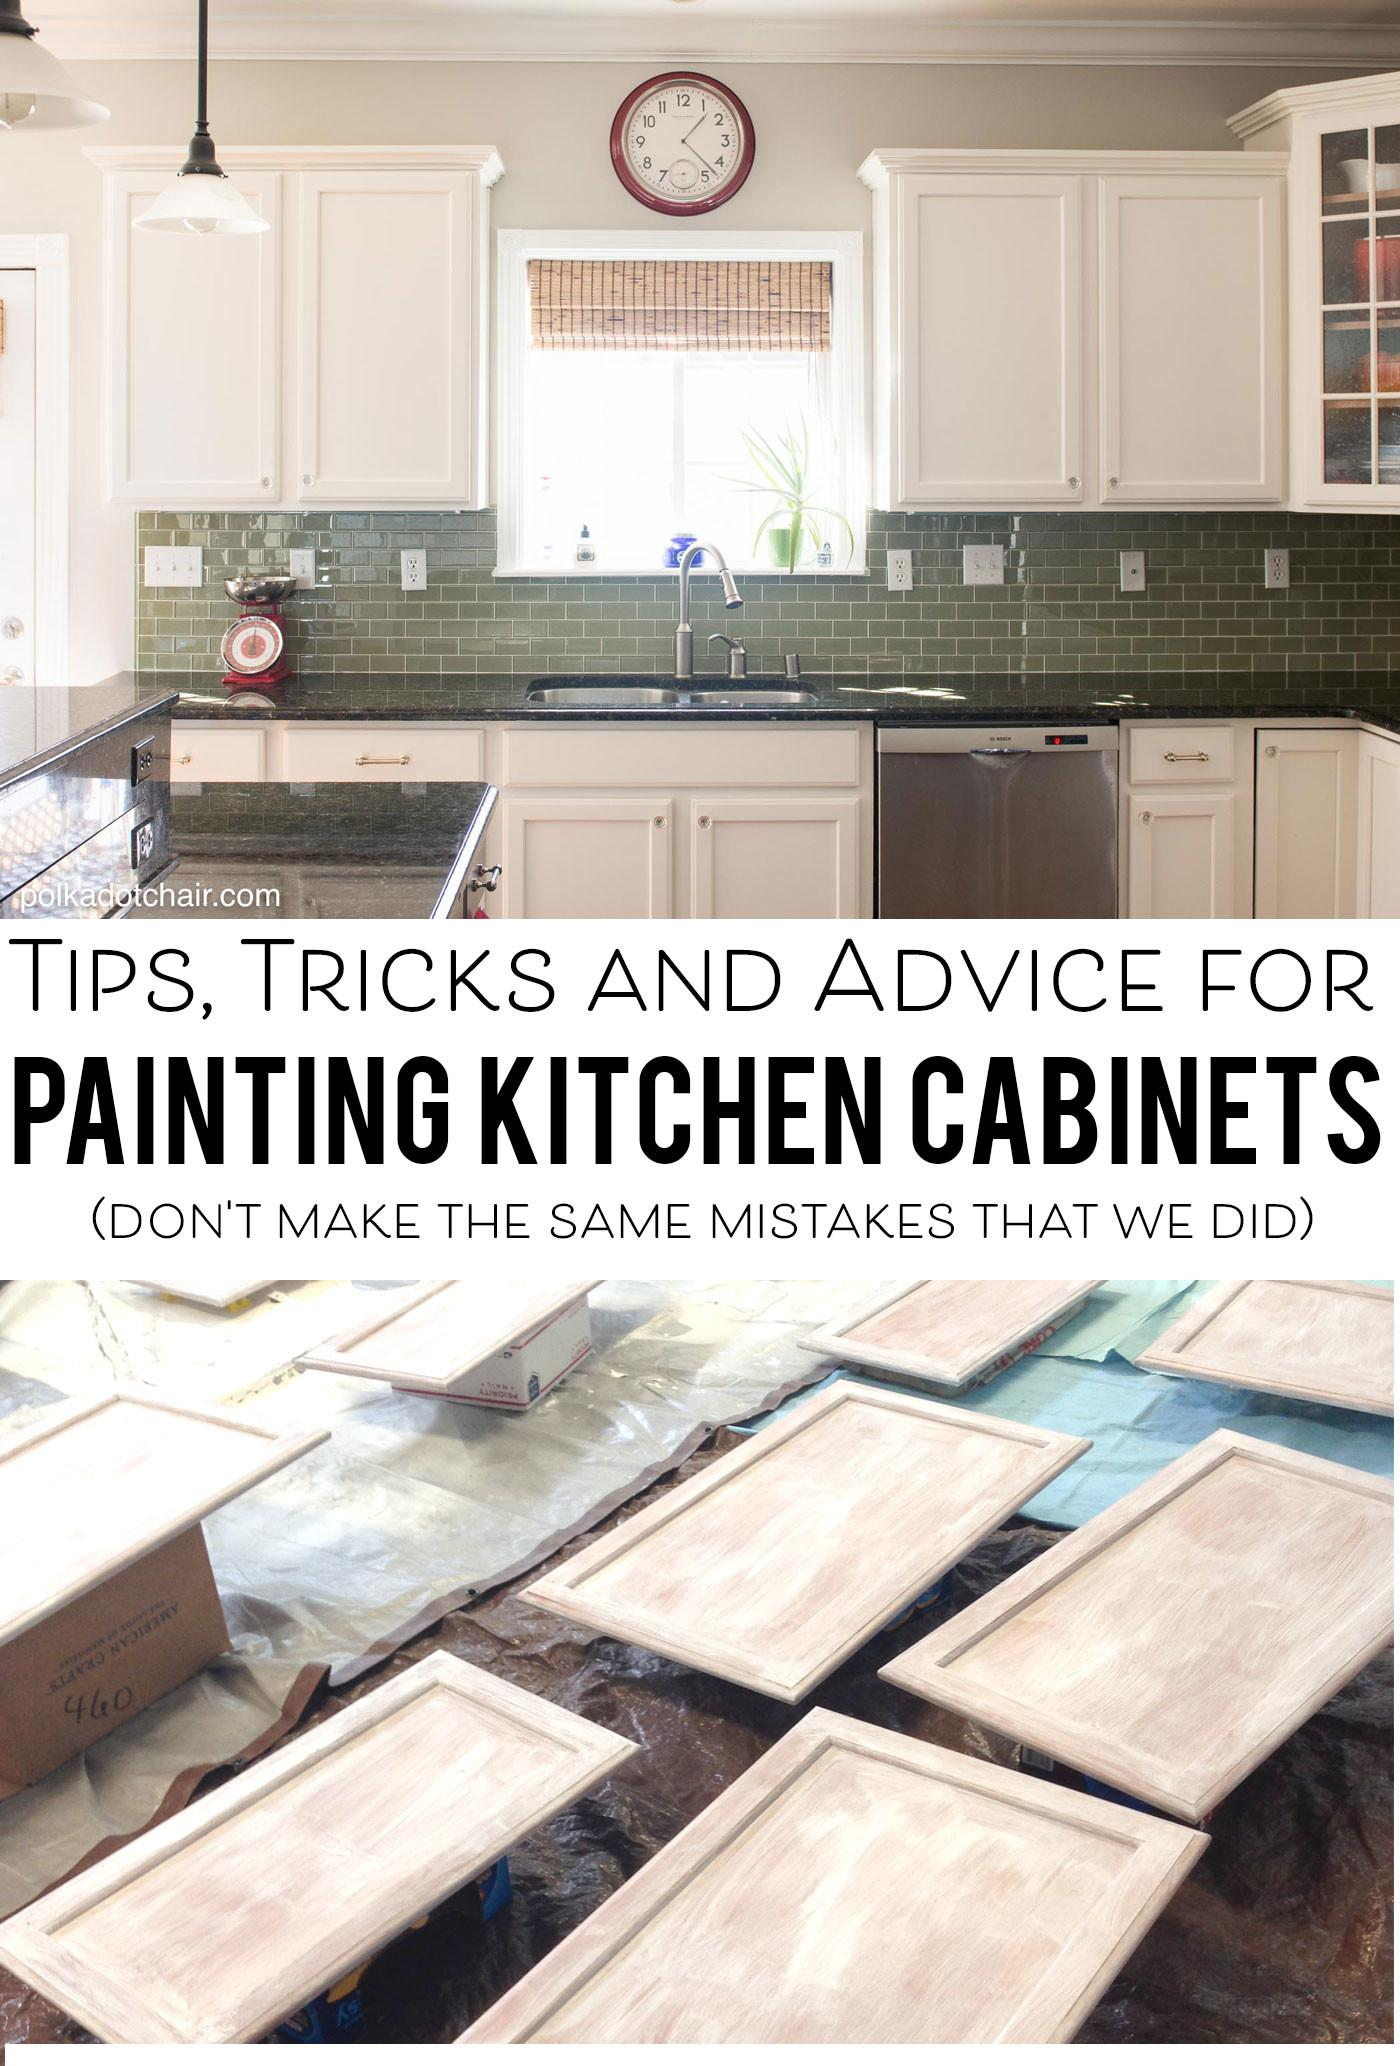 Tips Painting Kitchen Cabinets Polka Dot Chair